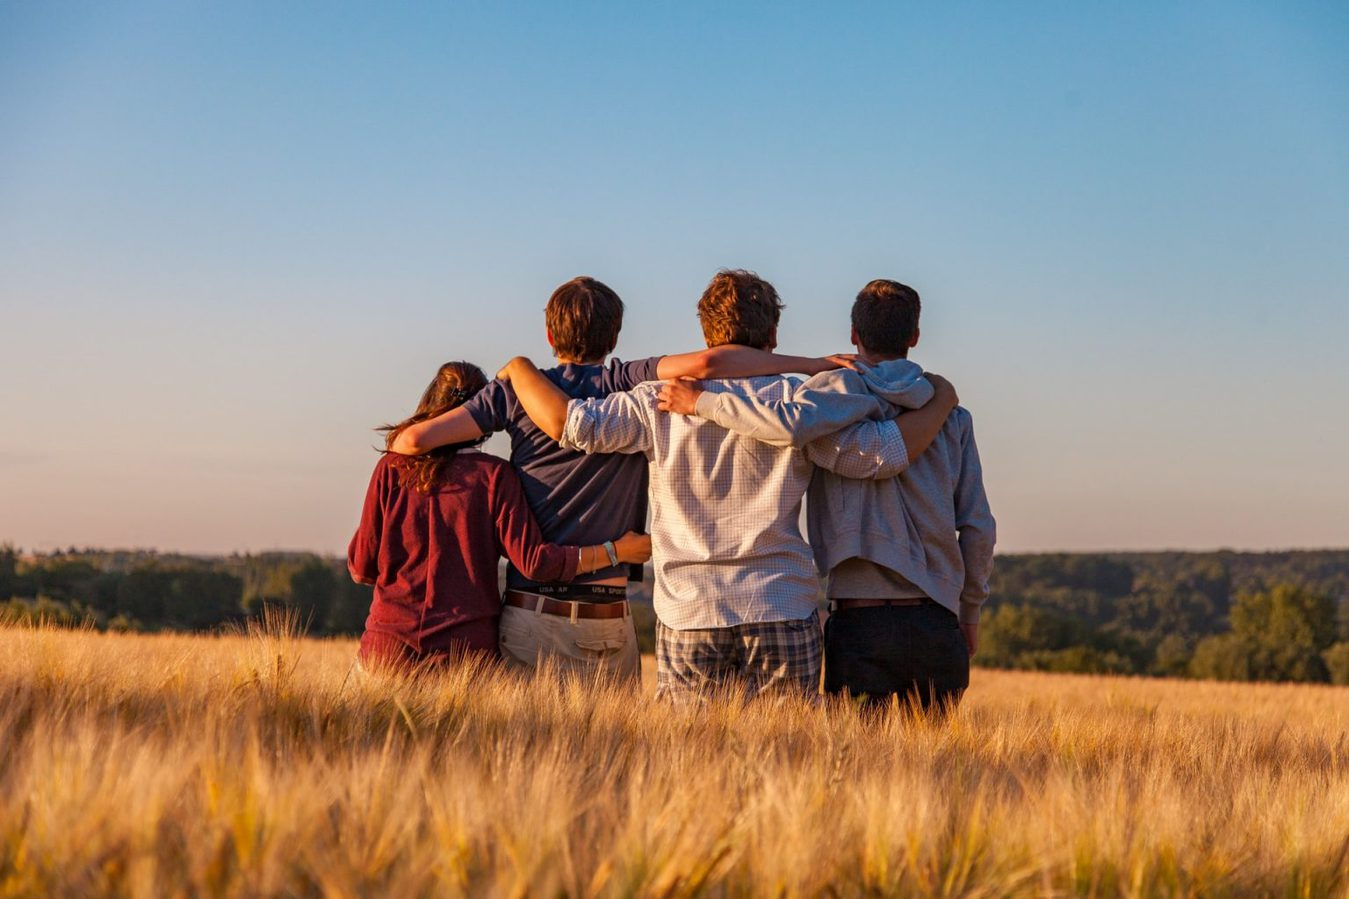 A group of friends in a field against a blue sky